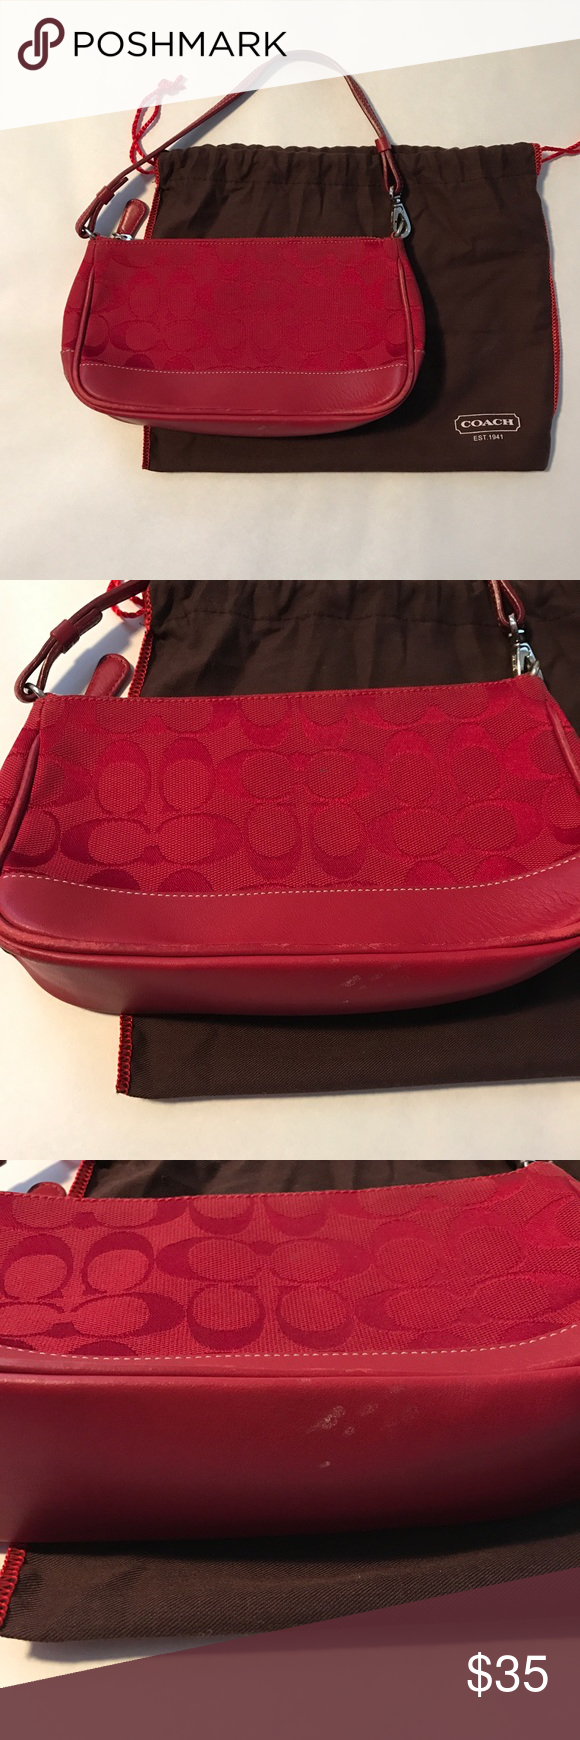 """Coach Signature Canvas Wristlet Coach classic! Approximately 8.5"""" x 2"""" x 5"""". Perfect for your essentials! Signature canvas with a leather bottom and handle in a rich red hue. Features silver hardware, a zip top, one interior pocket and includes original dust bag. One small spot on front of canvas and little wear around leather piping and bottom of the purse (please see photos). Coach Bags Mini Bags"""